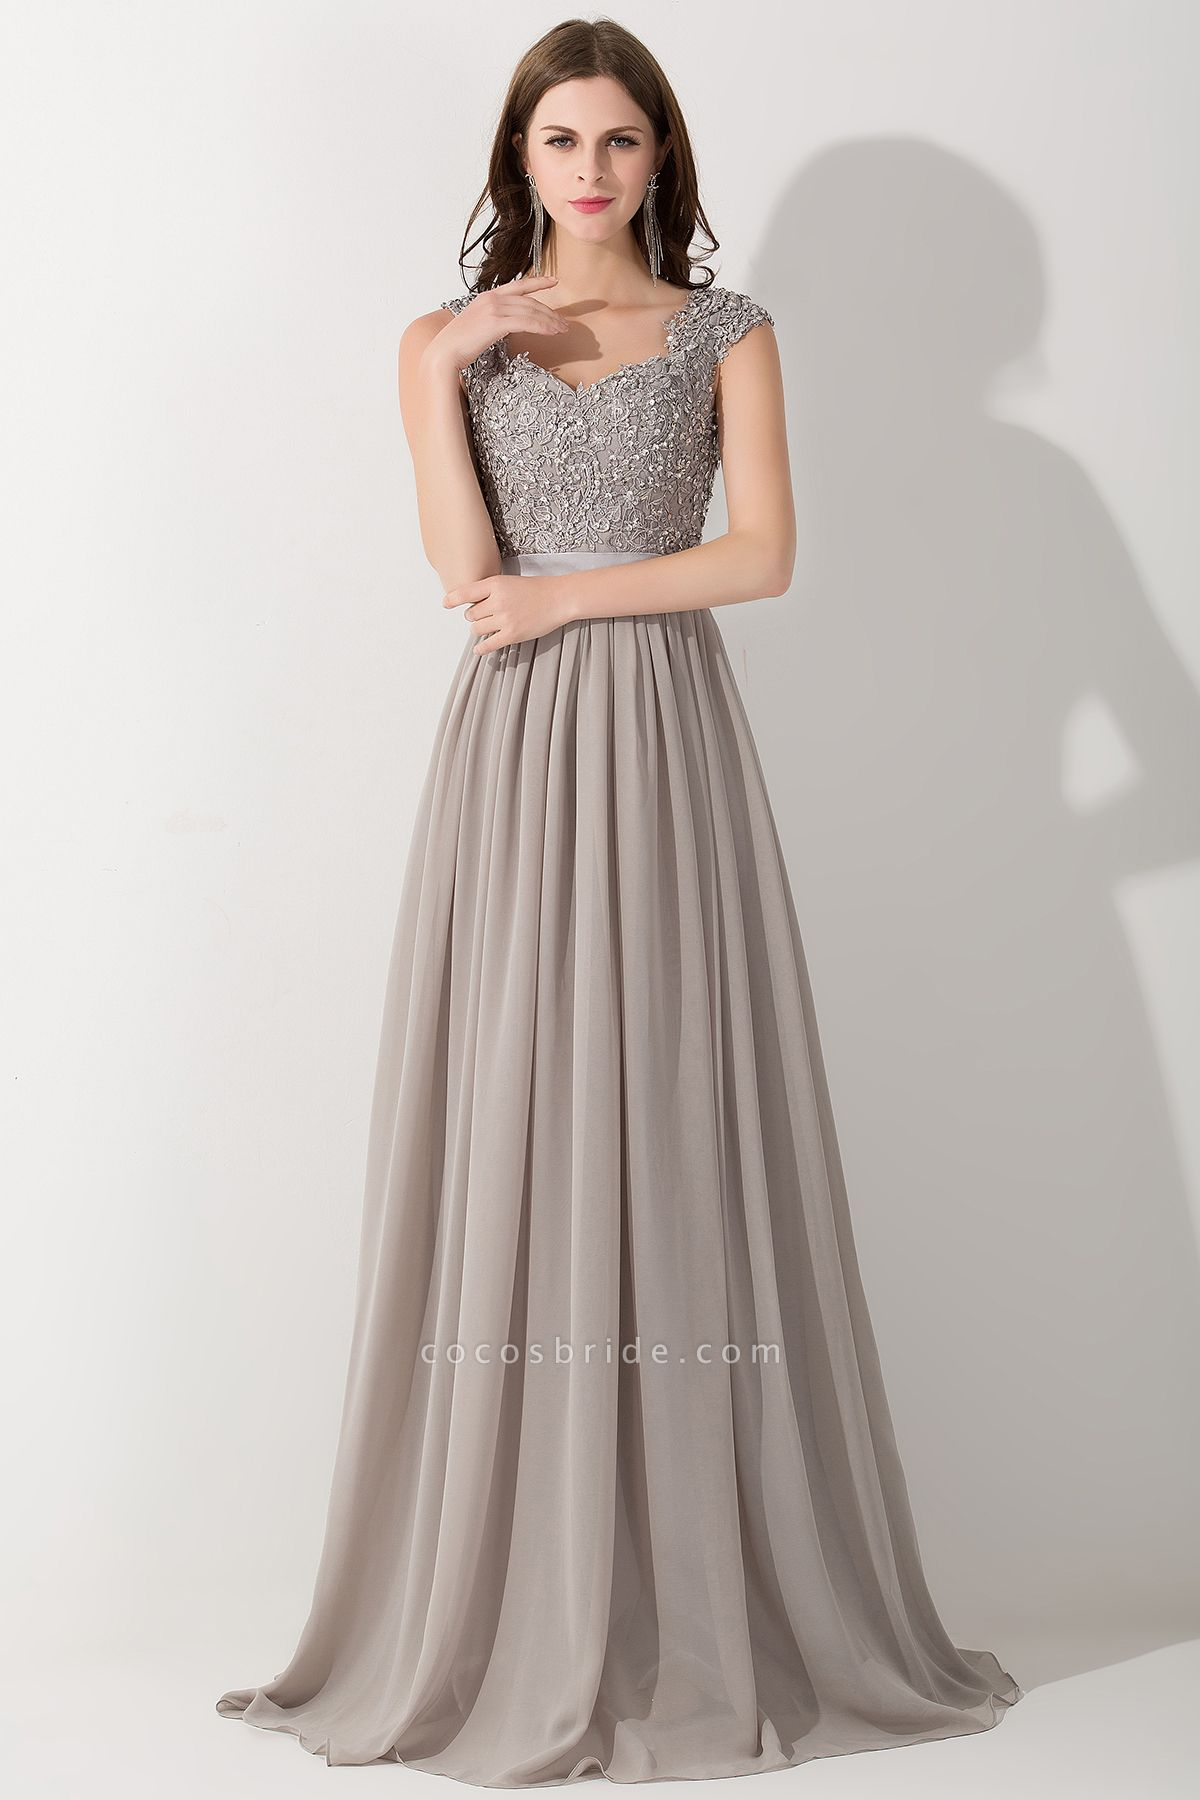 A-line Chiffon V-Neck Sleeveless Ruffles Floor-Length Bridesmaid Dress with Appliques